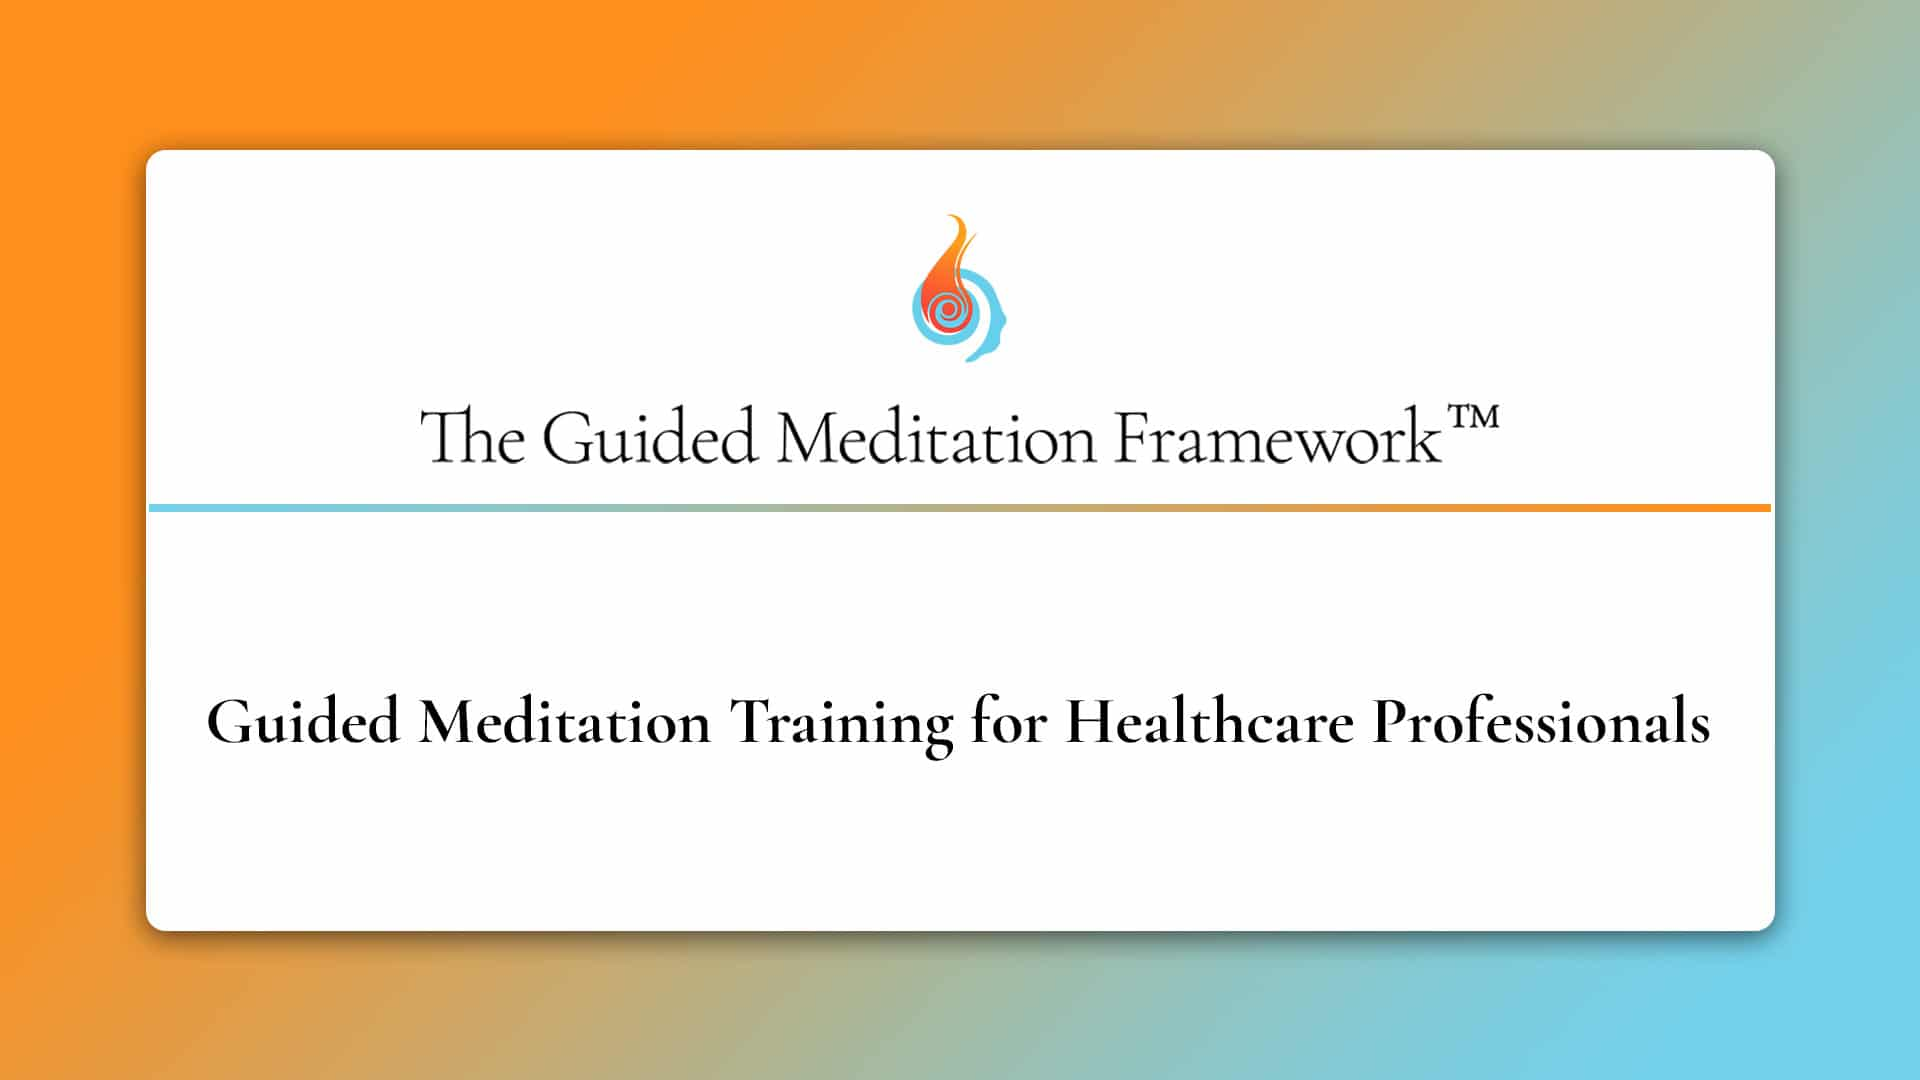 The Guided Meditation Framework for healthcare professionals